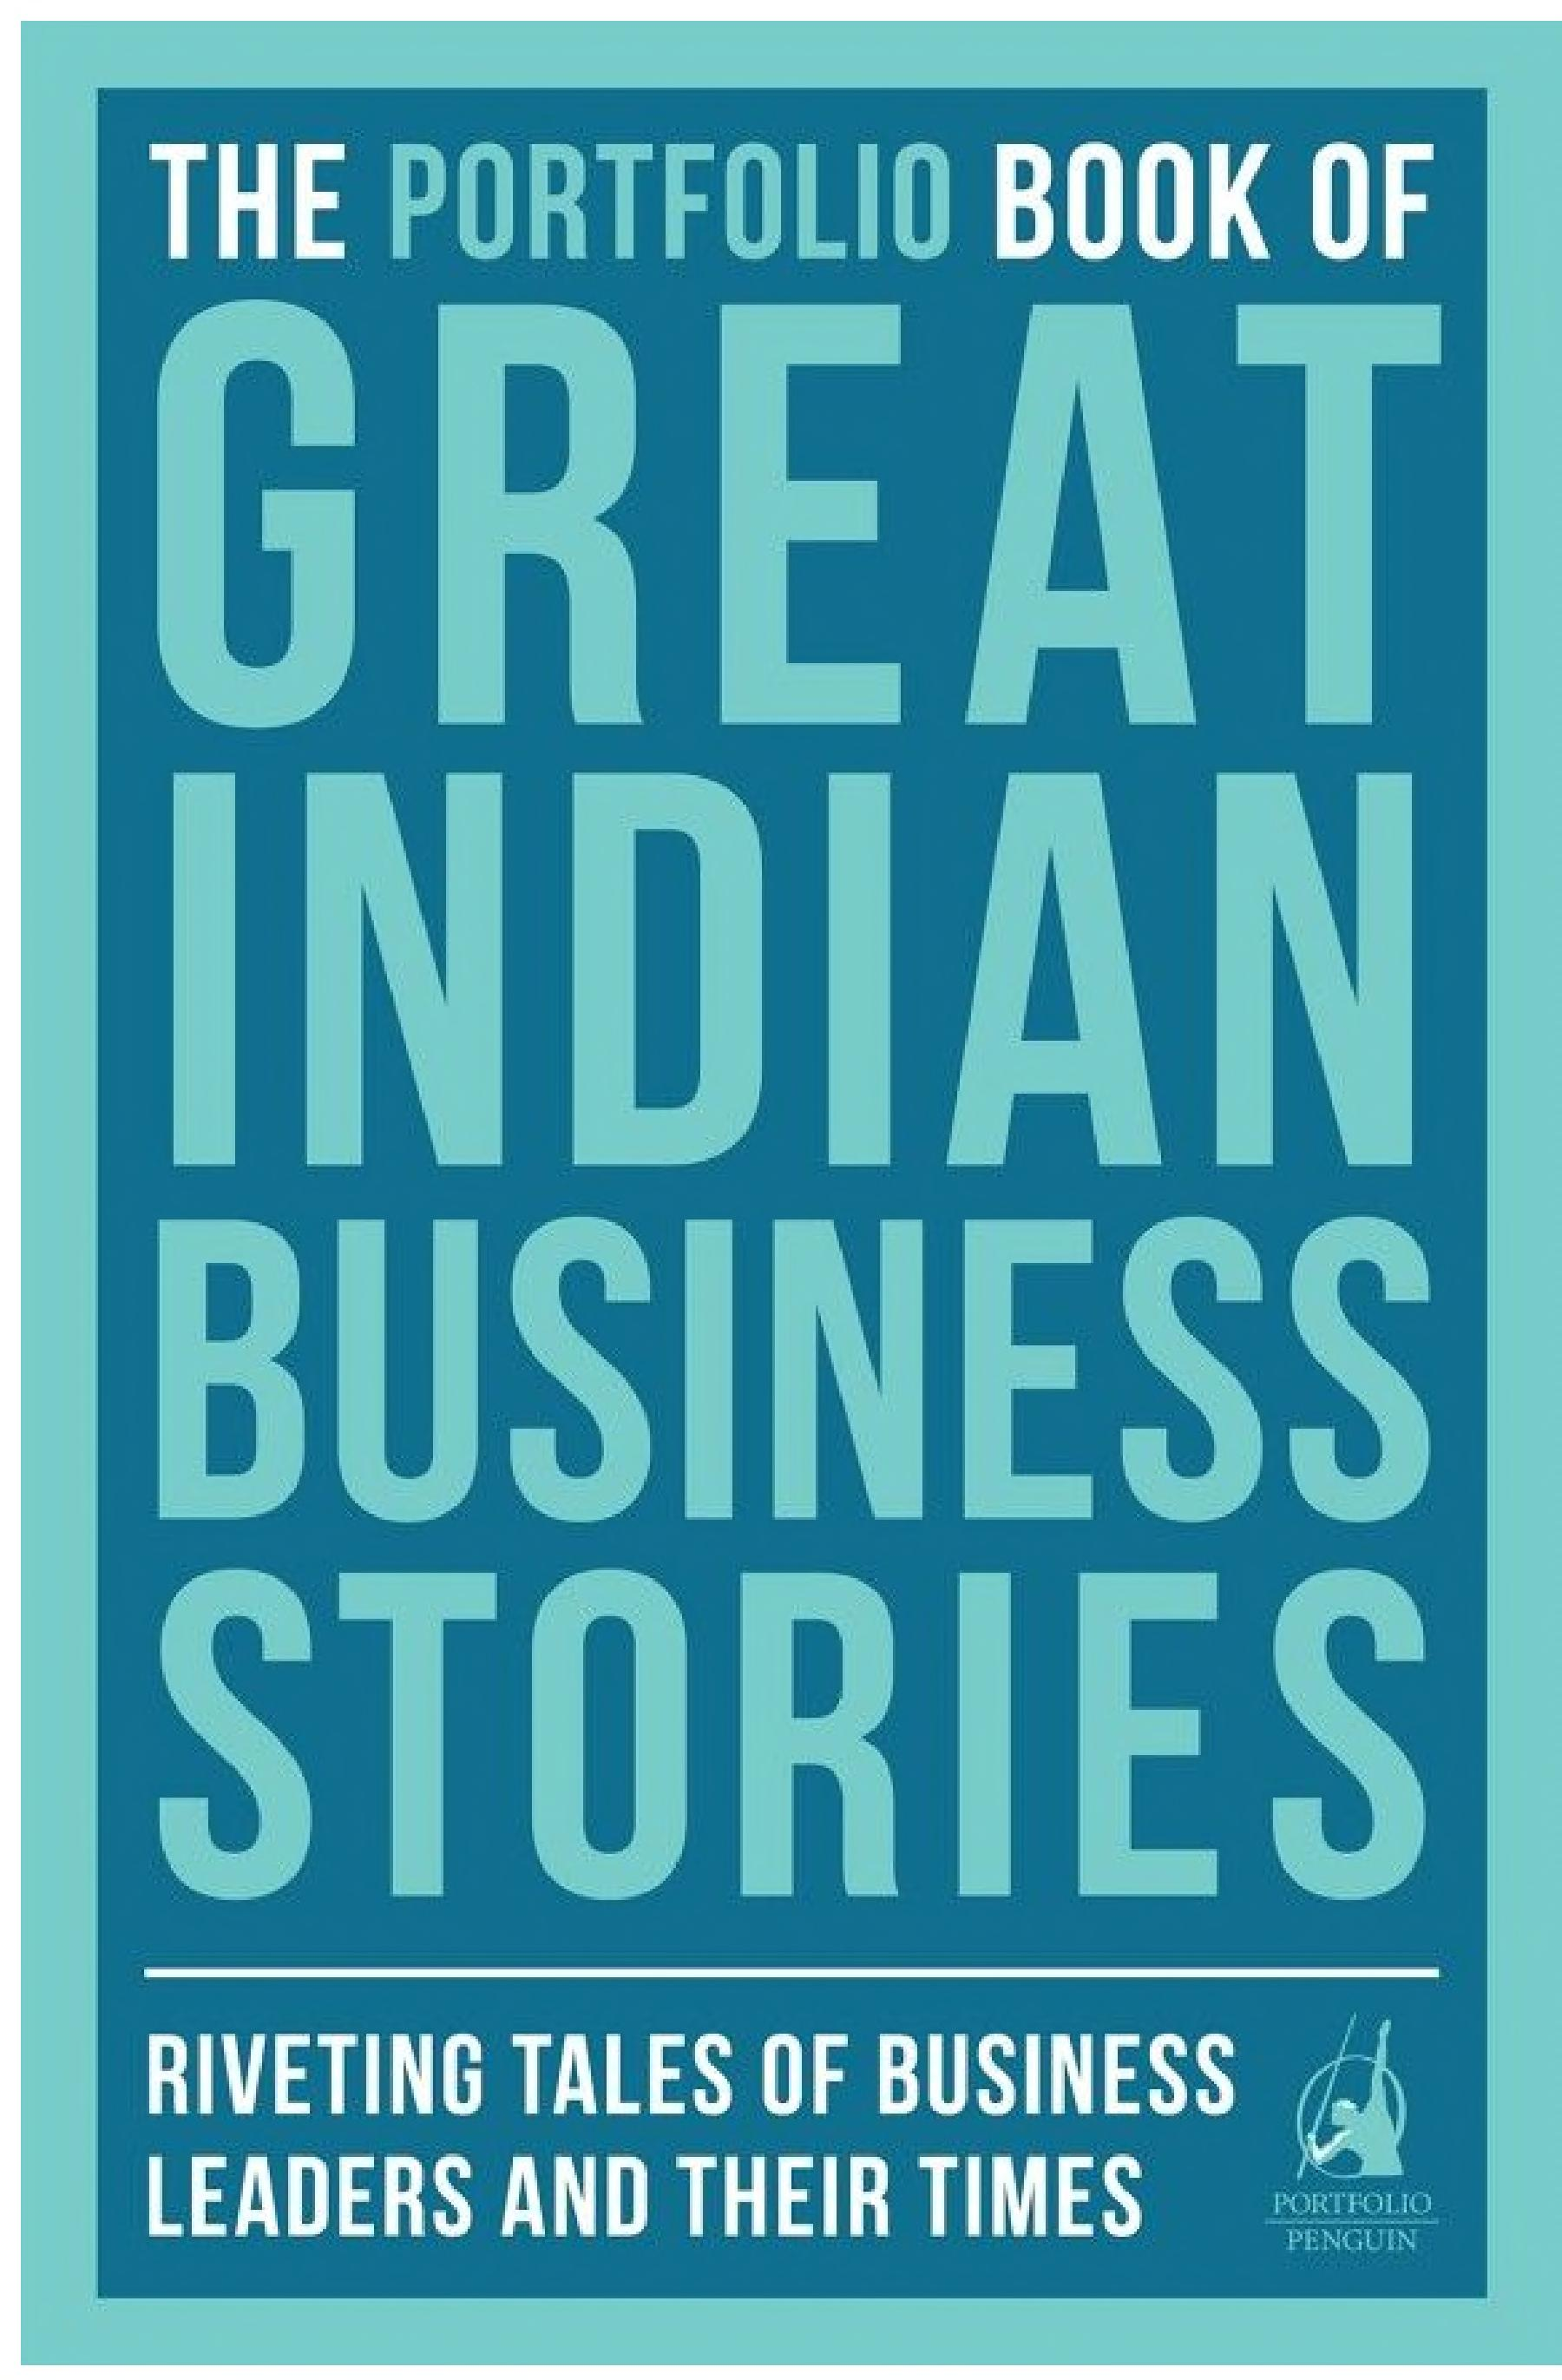 The Portfolio Book of Great Indian Business Stories a polyester plant in record time? What made